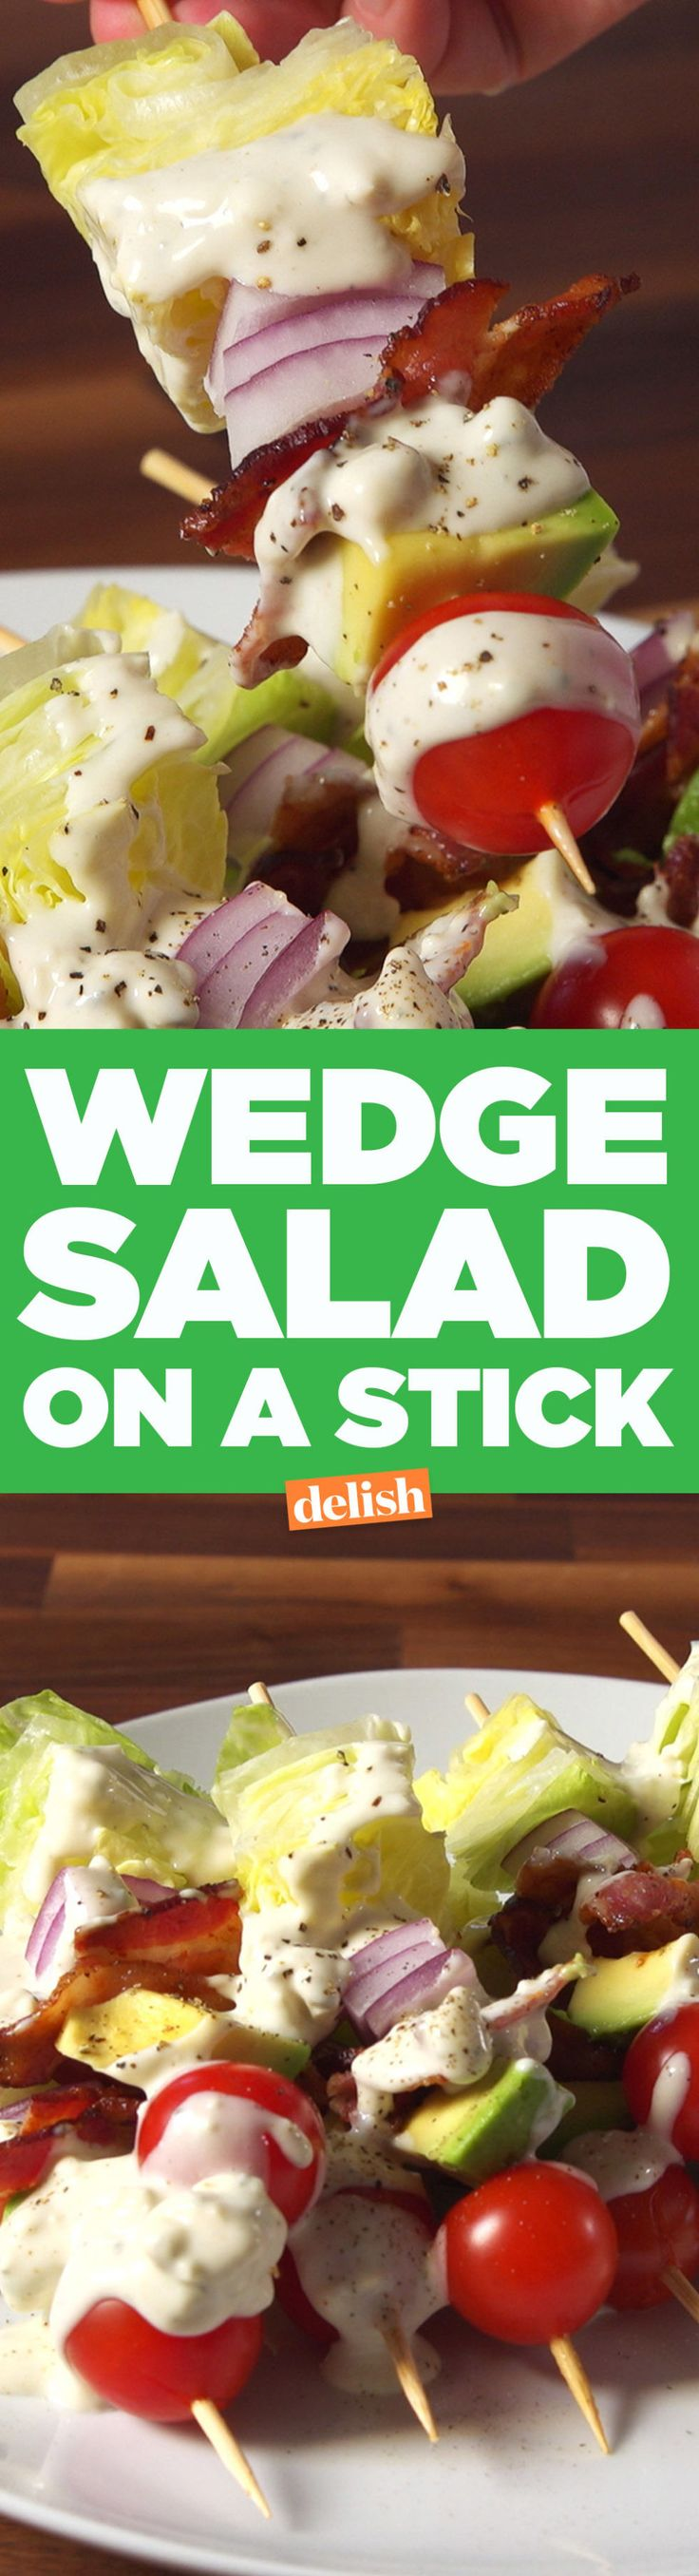 Wedge Salad On A Stick  - Delish.com